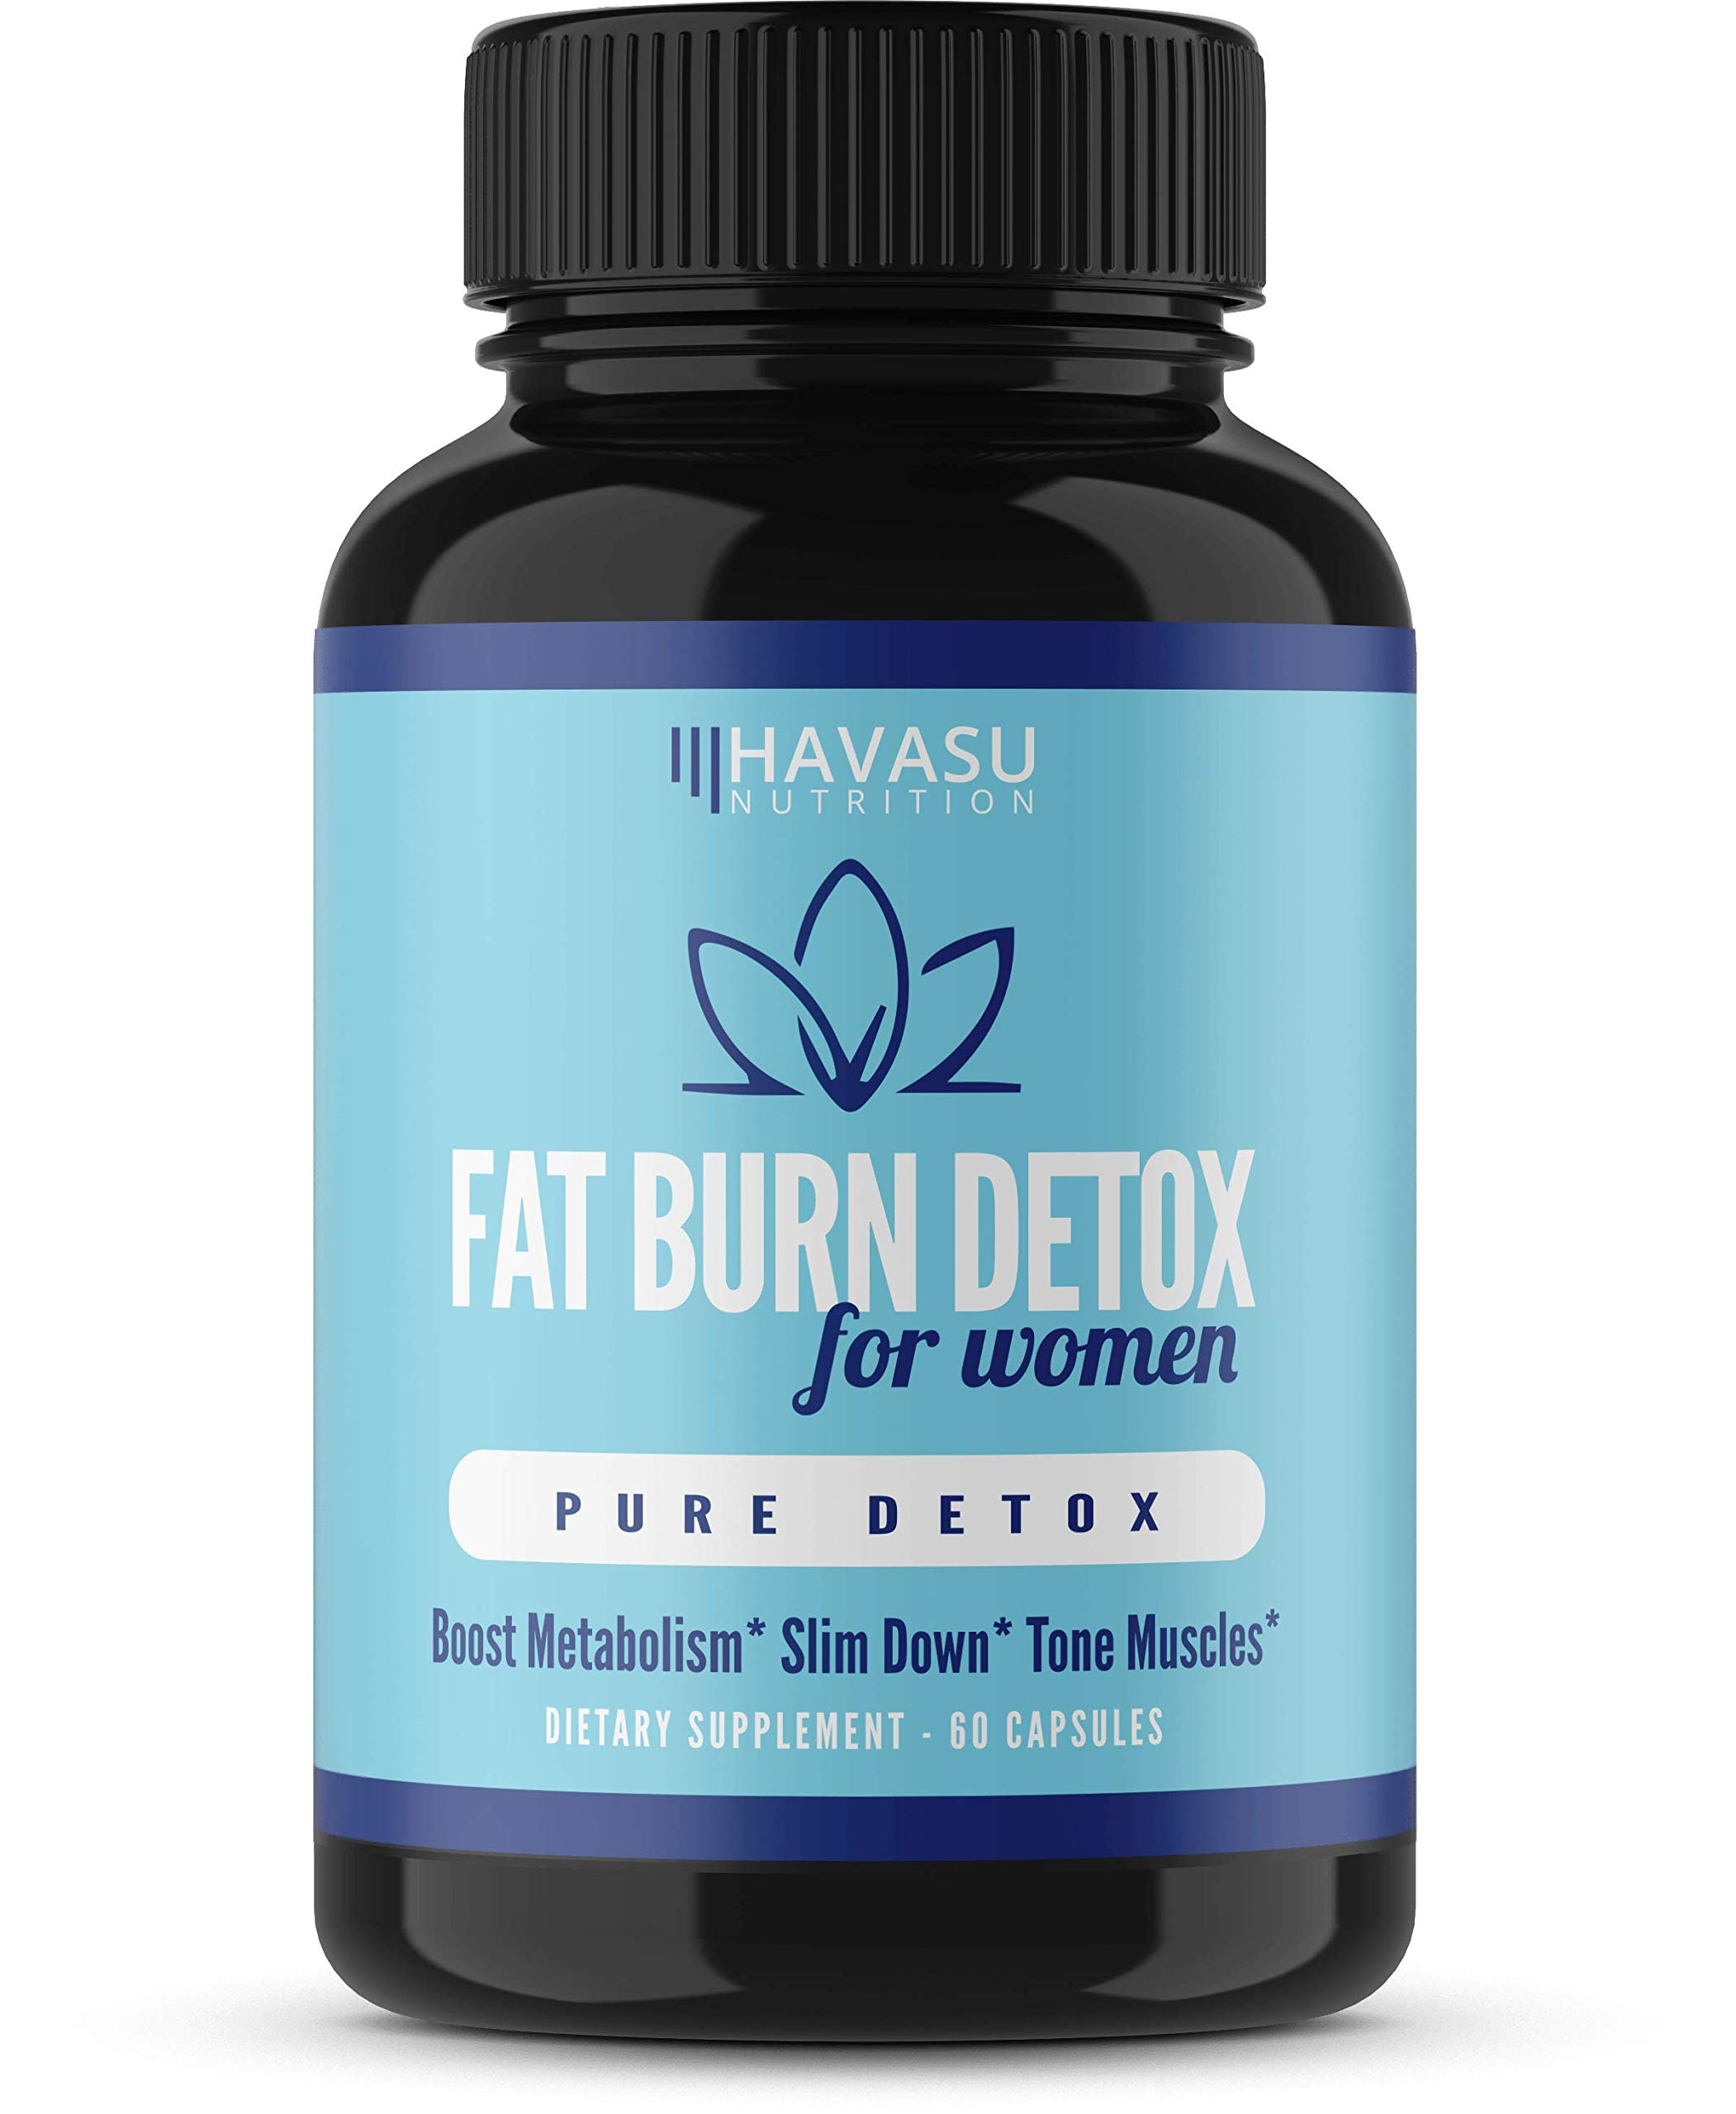 Havasu Nutrition Women's Fat Burner - Womens Keto Fat Burn Detox - Weight Loss Pills Designed for Optimizing Weight Loss & Increasing Energy Levels, Fat Loss, and Muscle Tone, NON-GMO, 60 Capsules by Havasu Nutrition